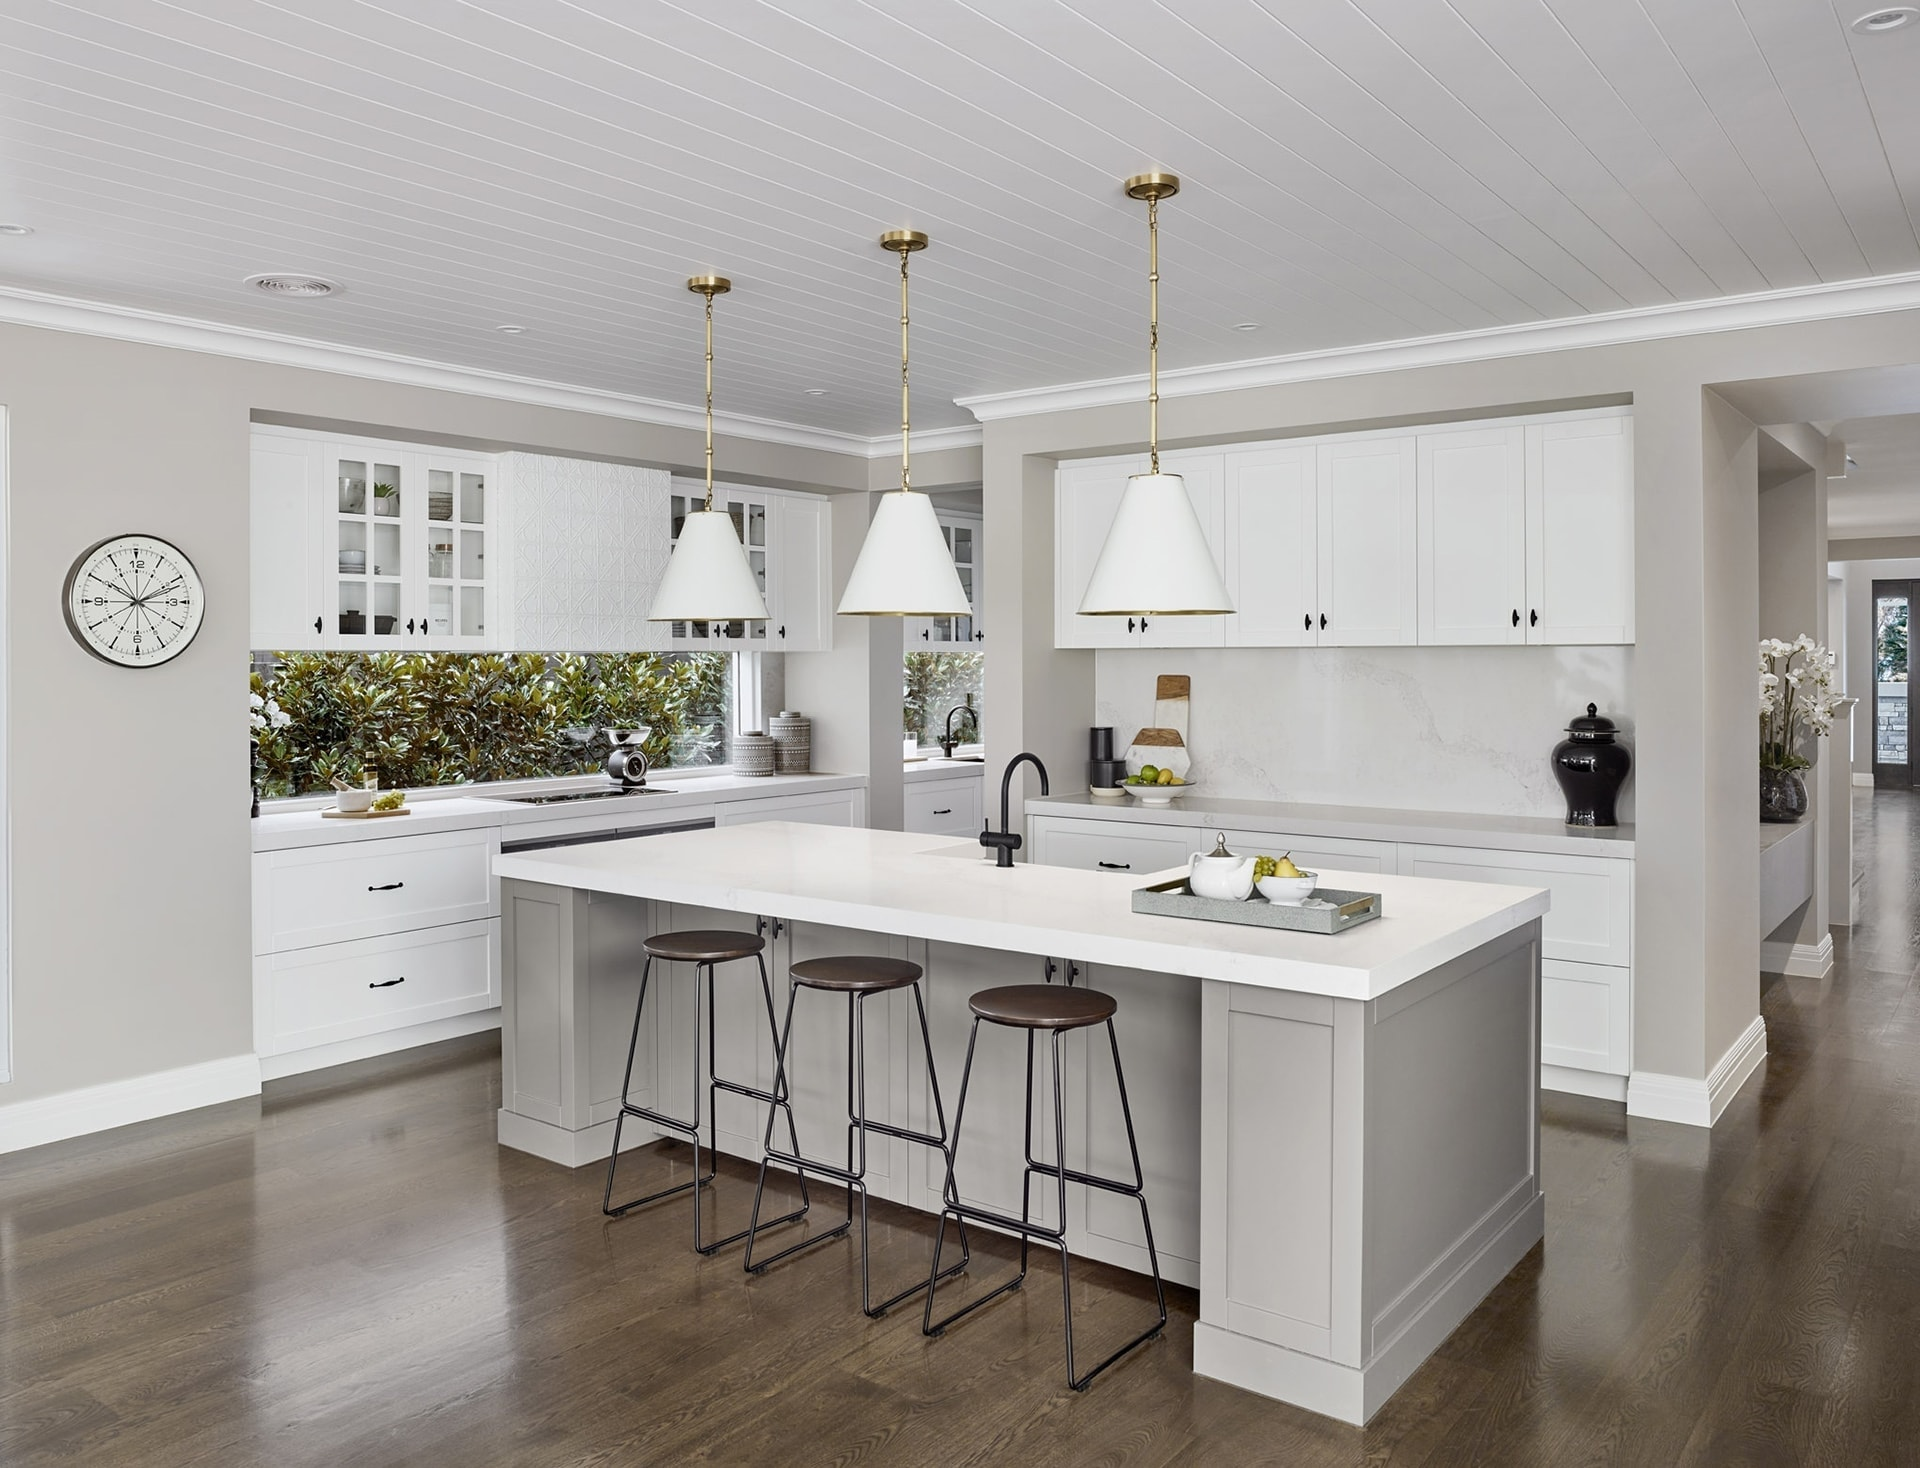 9 Hamptons Style Kitchen Must-Have Inclusions - TLC Interiors